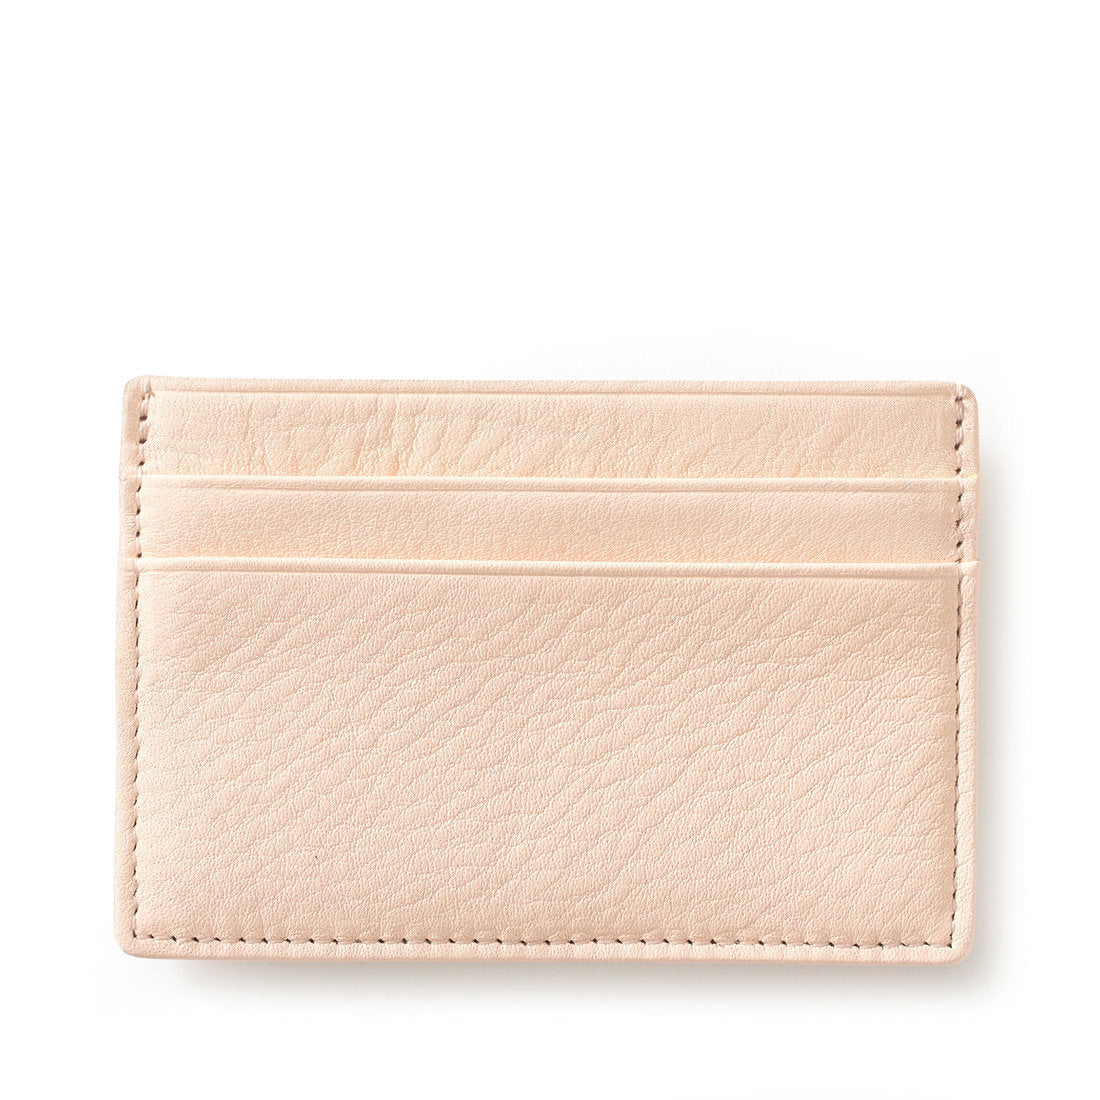 Leather RFID Blocker Business Card Holder